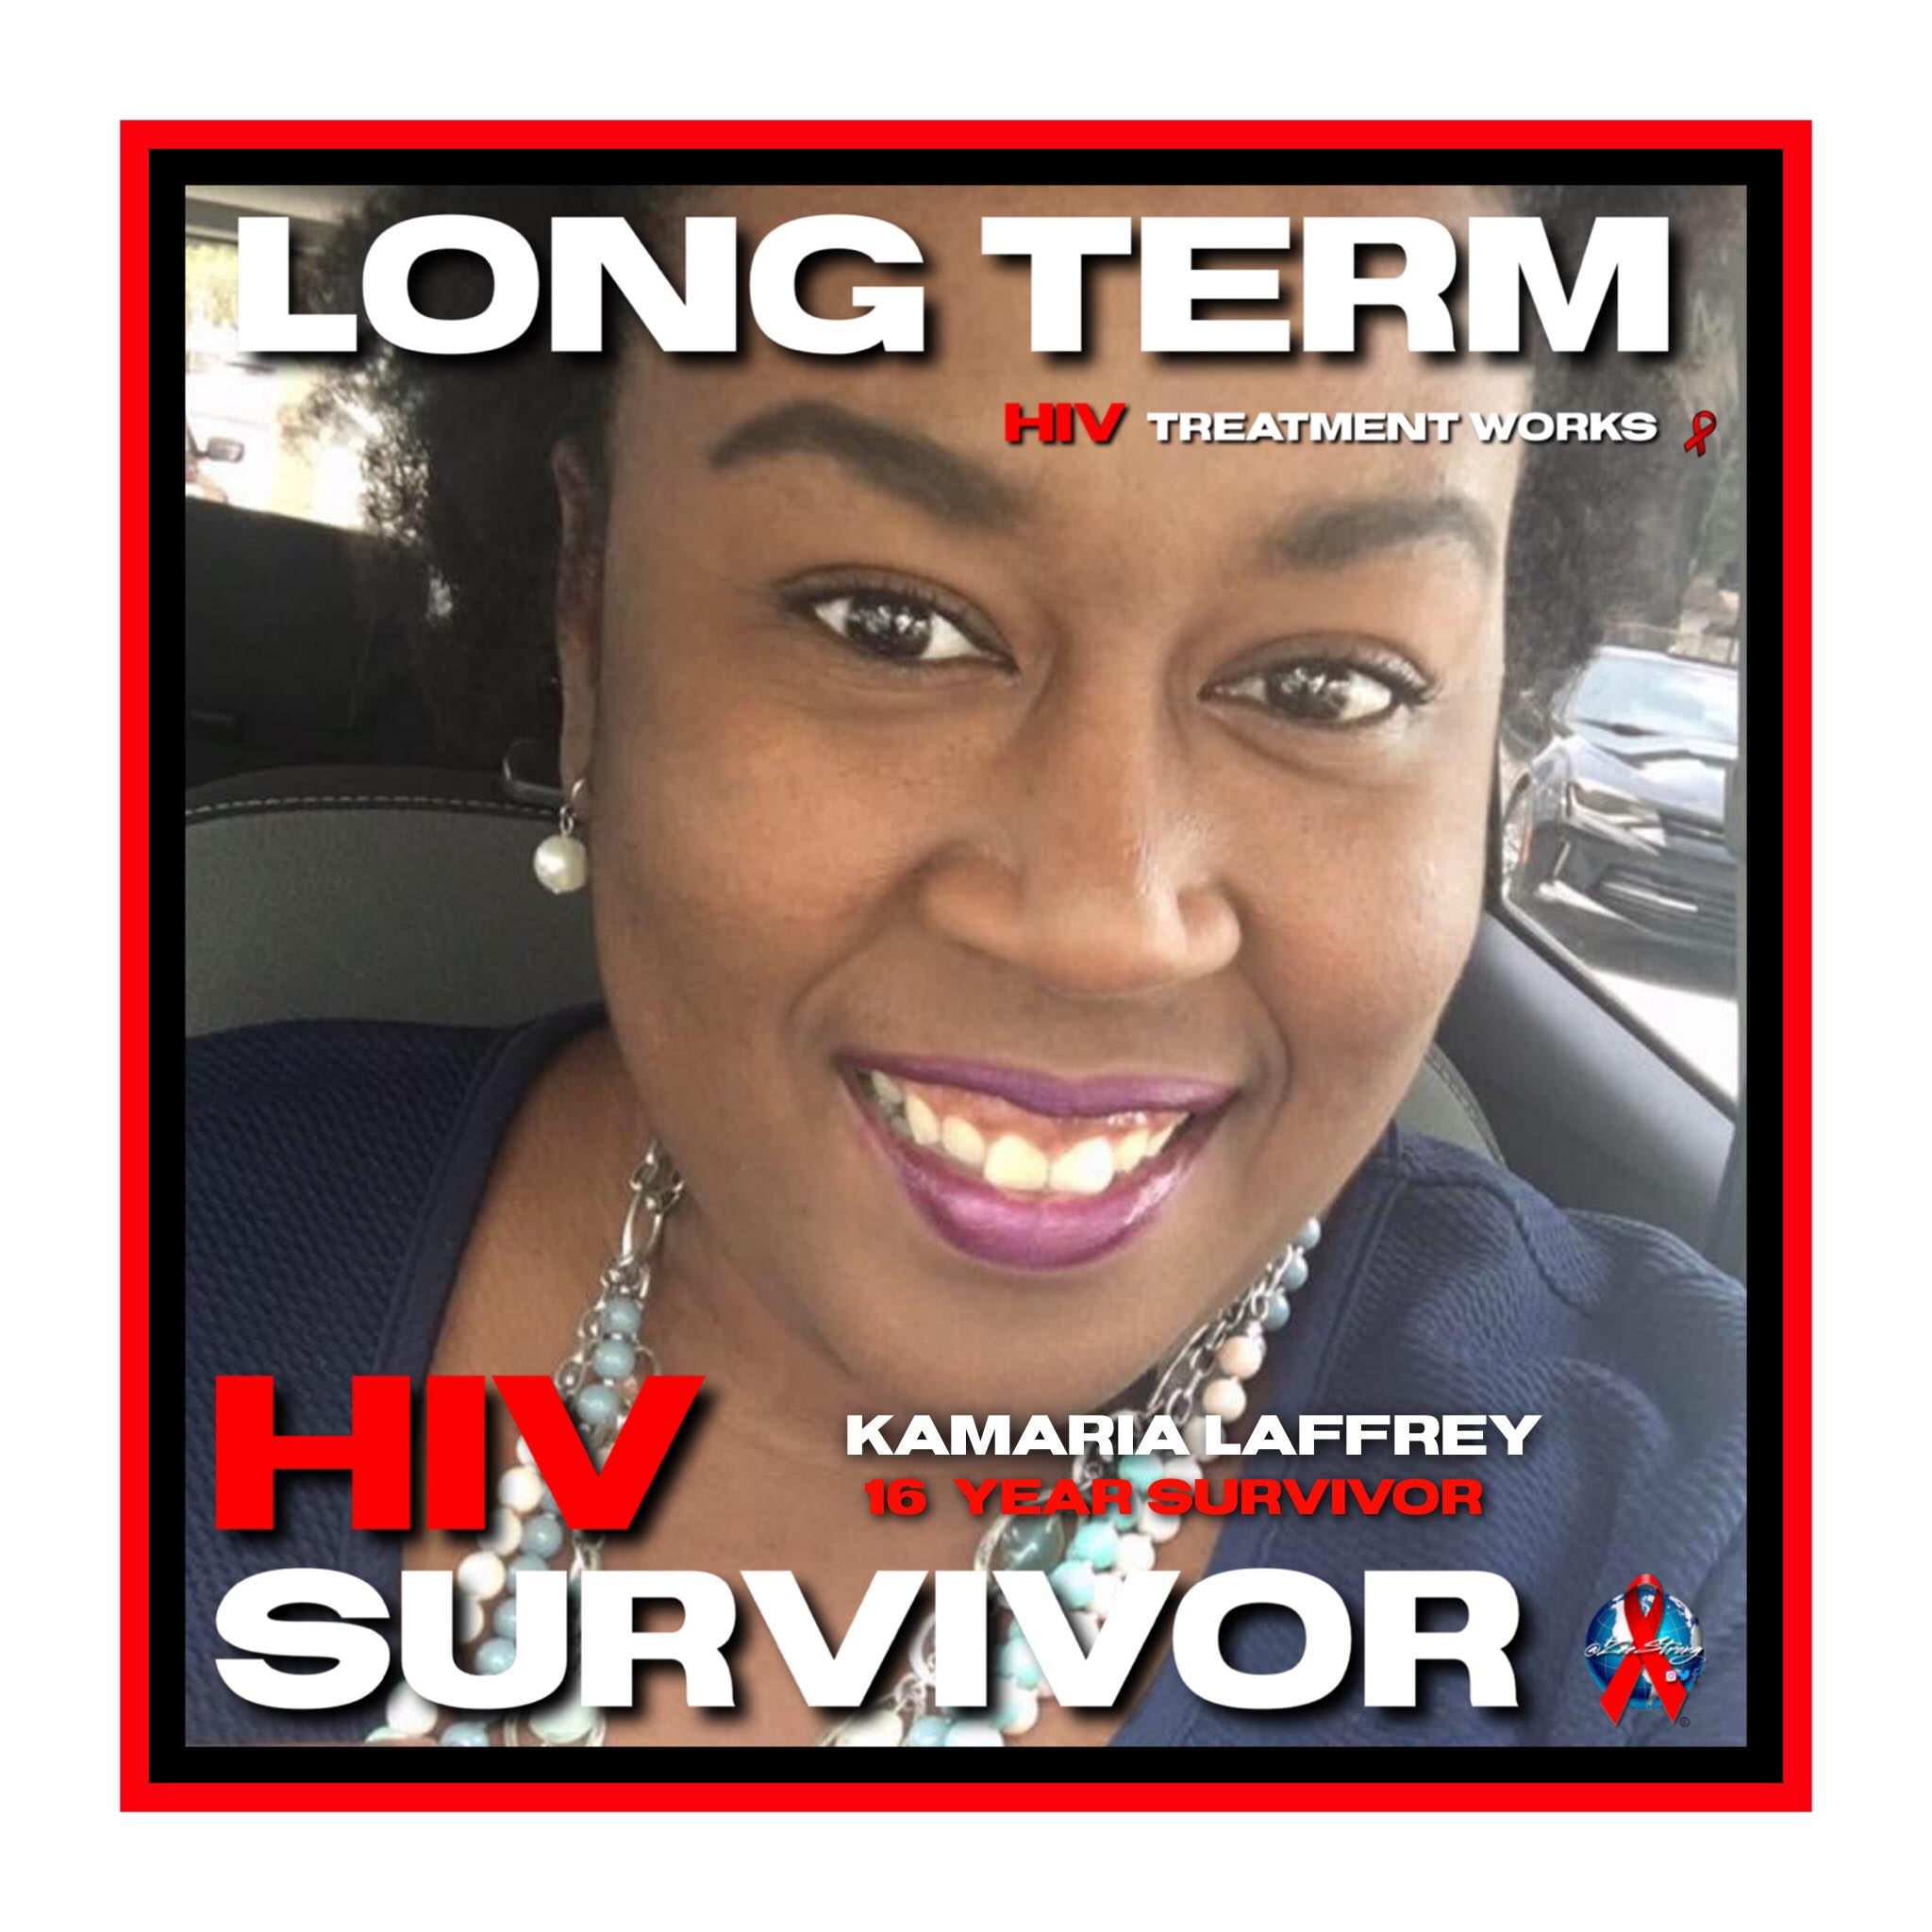 IMAGE: Woman smiling with words in a frame around her face Long Term Treatment Works, Kamaria Laffrey 16 Year Survivor, HIV Survivor  Graphic Design Credit - Zee Strong of the  Digital Living Quilt